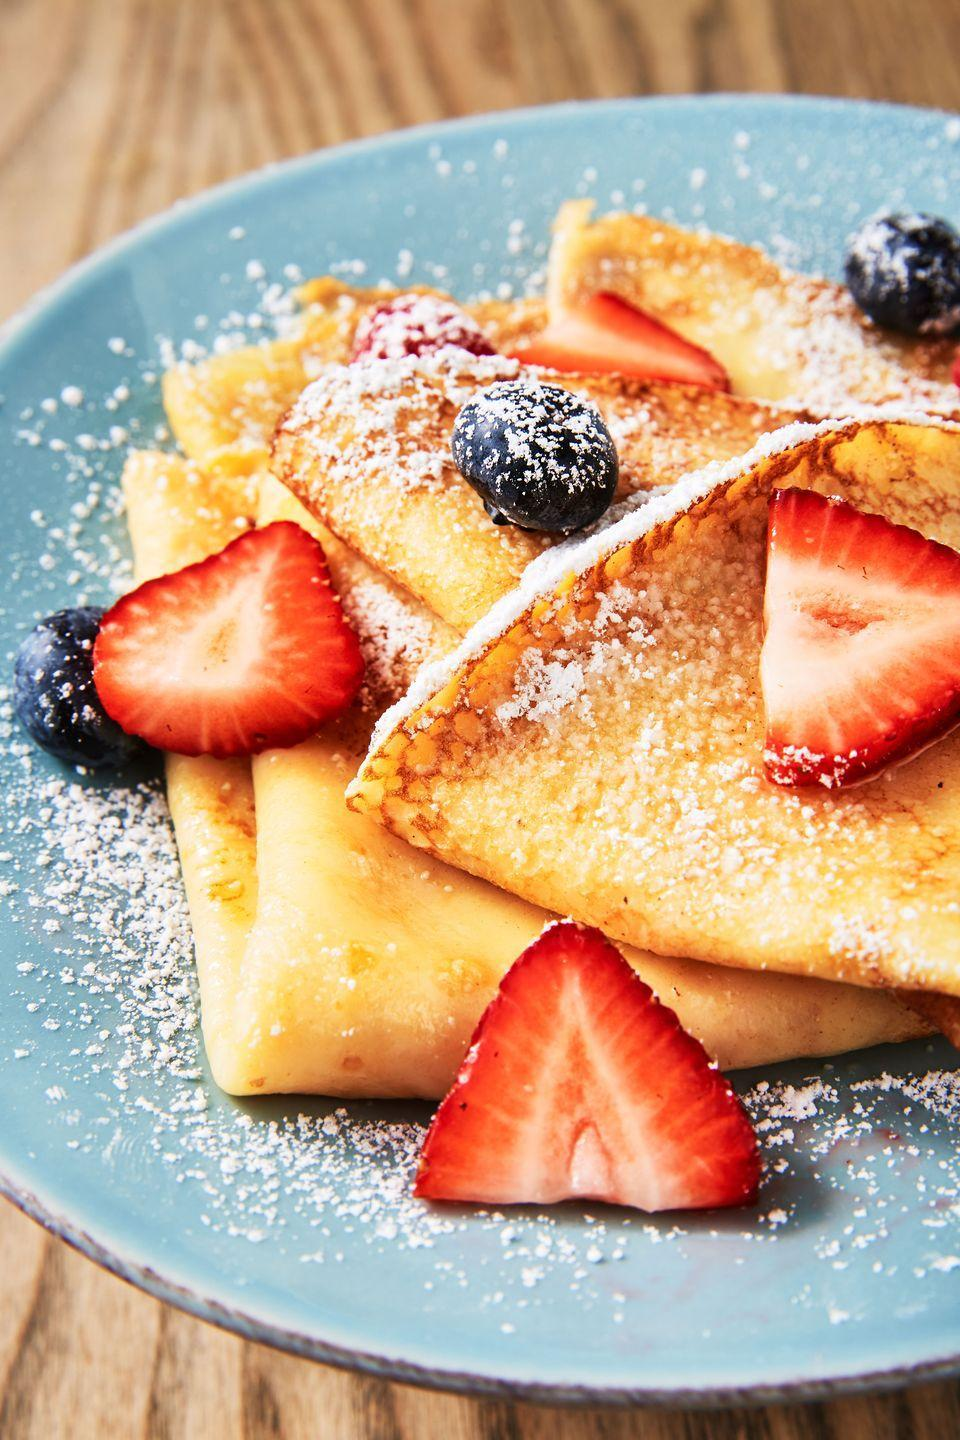 """<p>These are a light, versatile favorite that is sure to be a hit on Mother's Day.</p><p>Get the recipe from <a href=""""https://www.delish.com/cooking/recipe-ideas/recipes/a52114/easy-basic-crepe-recipe/"""" rel=""""nofollow noopener"""" target=""""_blank"""" data-ylk=""""slk:Delish."""" class=""""link rapid-noclick-resp"""">Delish.</a></p>"""